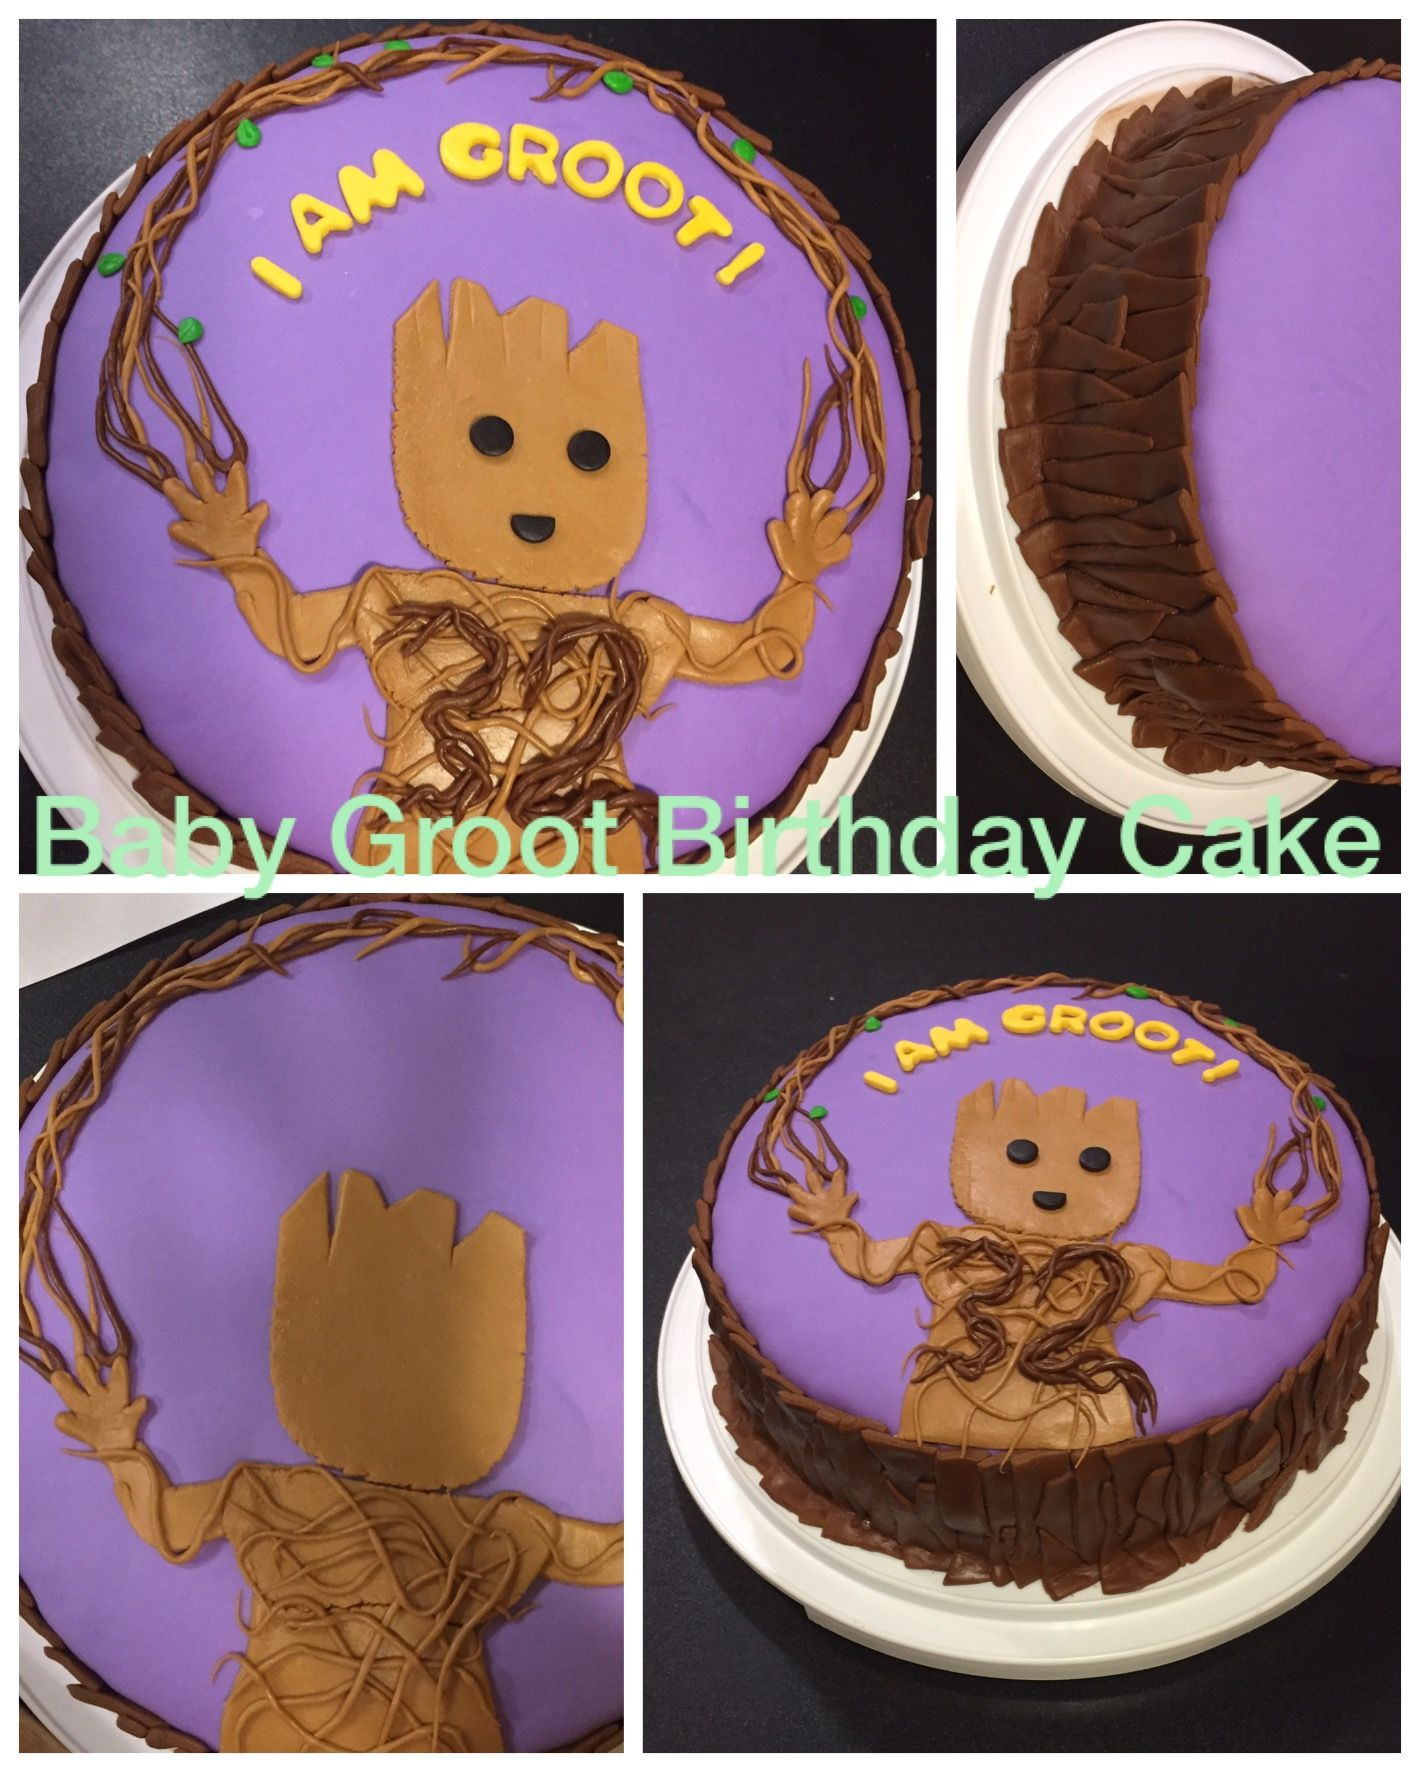 Baby Groot birthday cake from Guardians of the Galaxy vol 2 for my